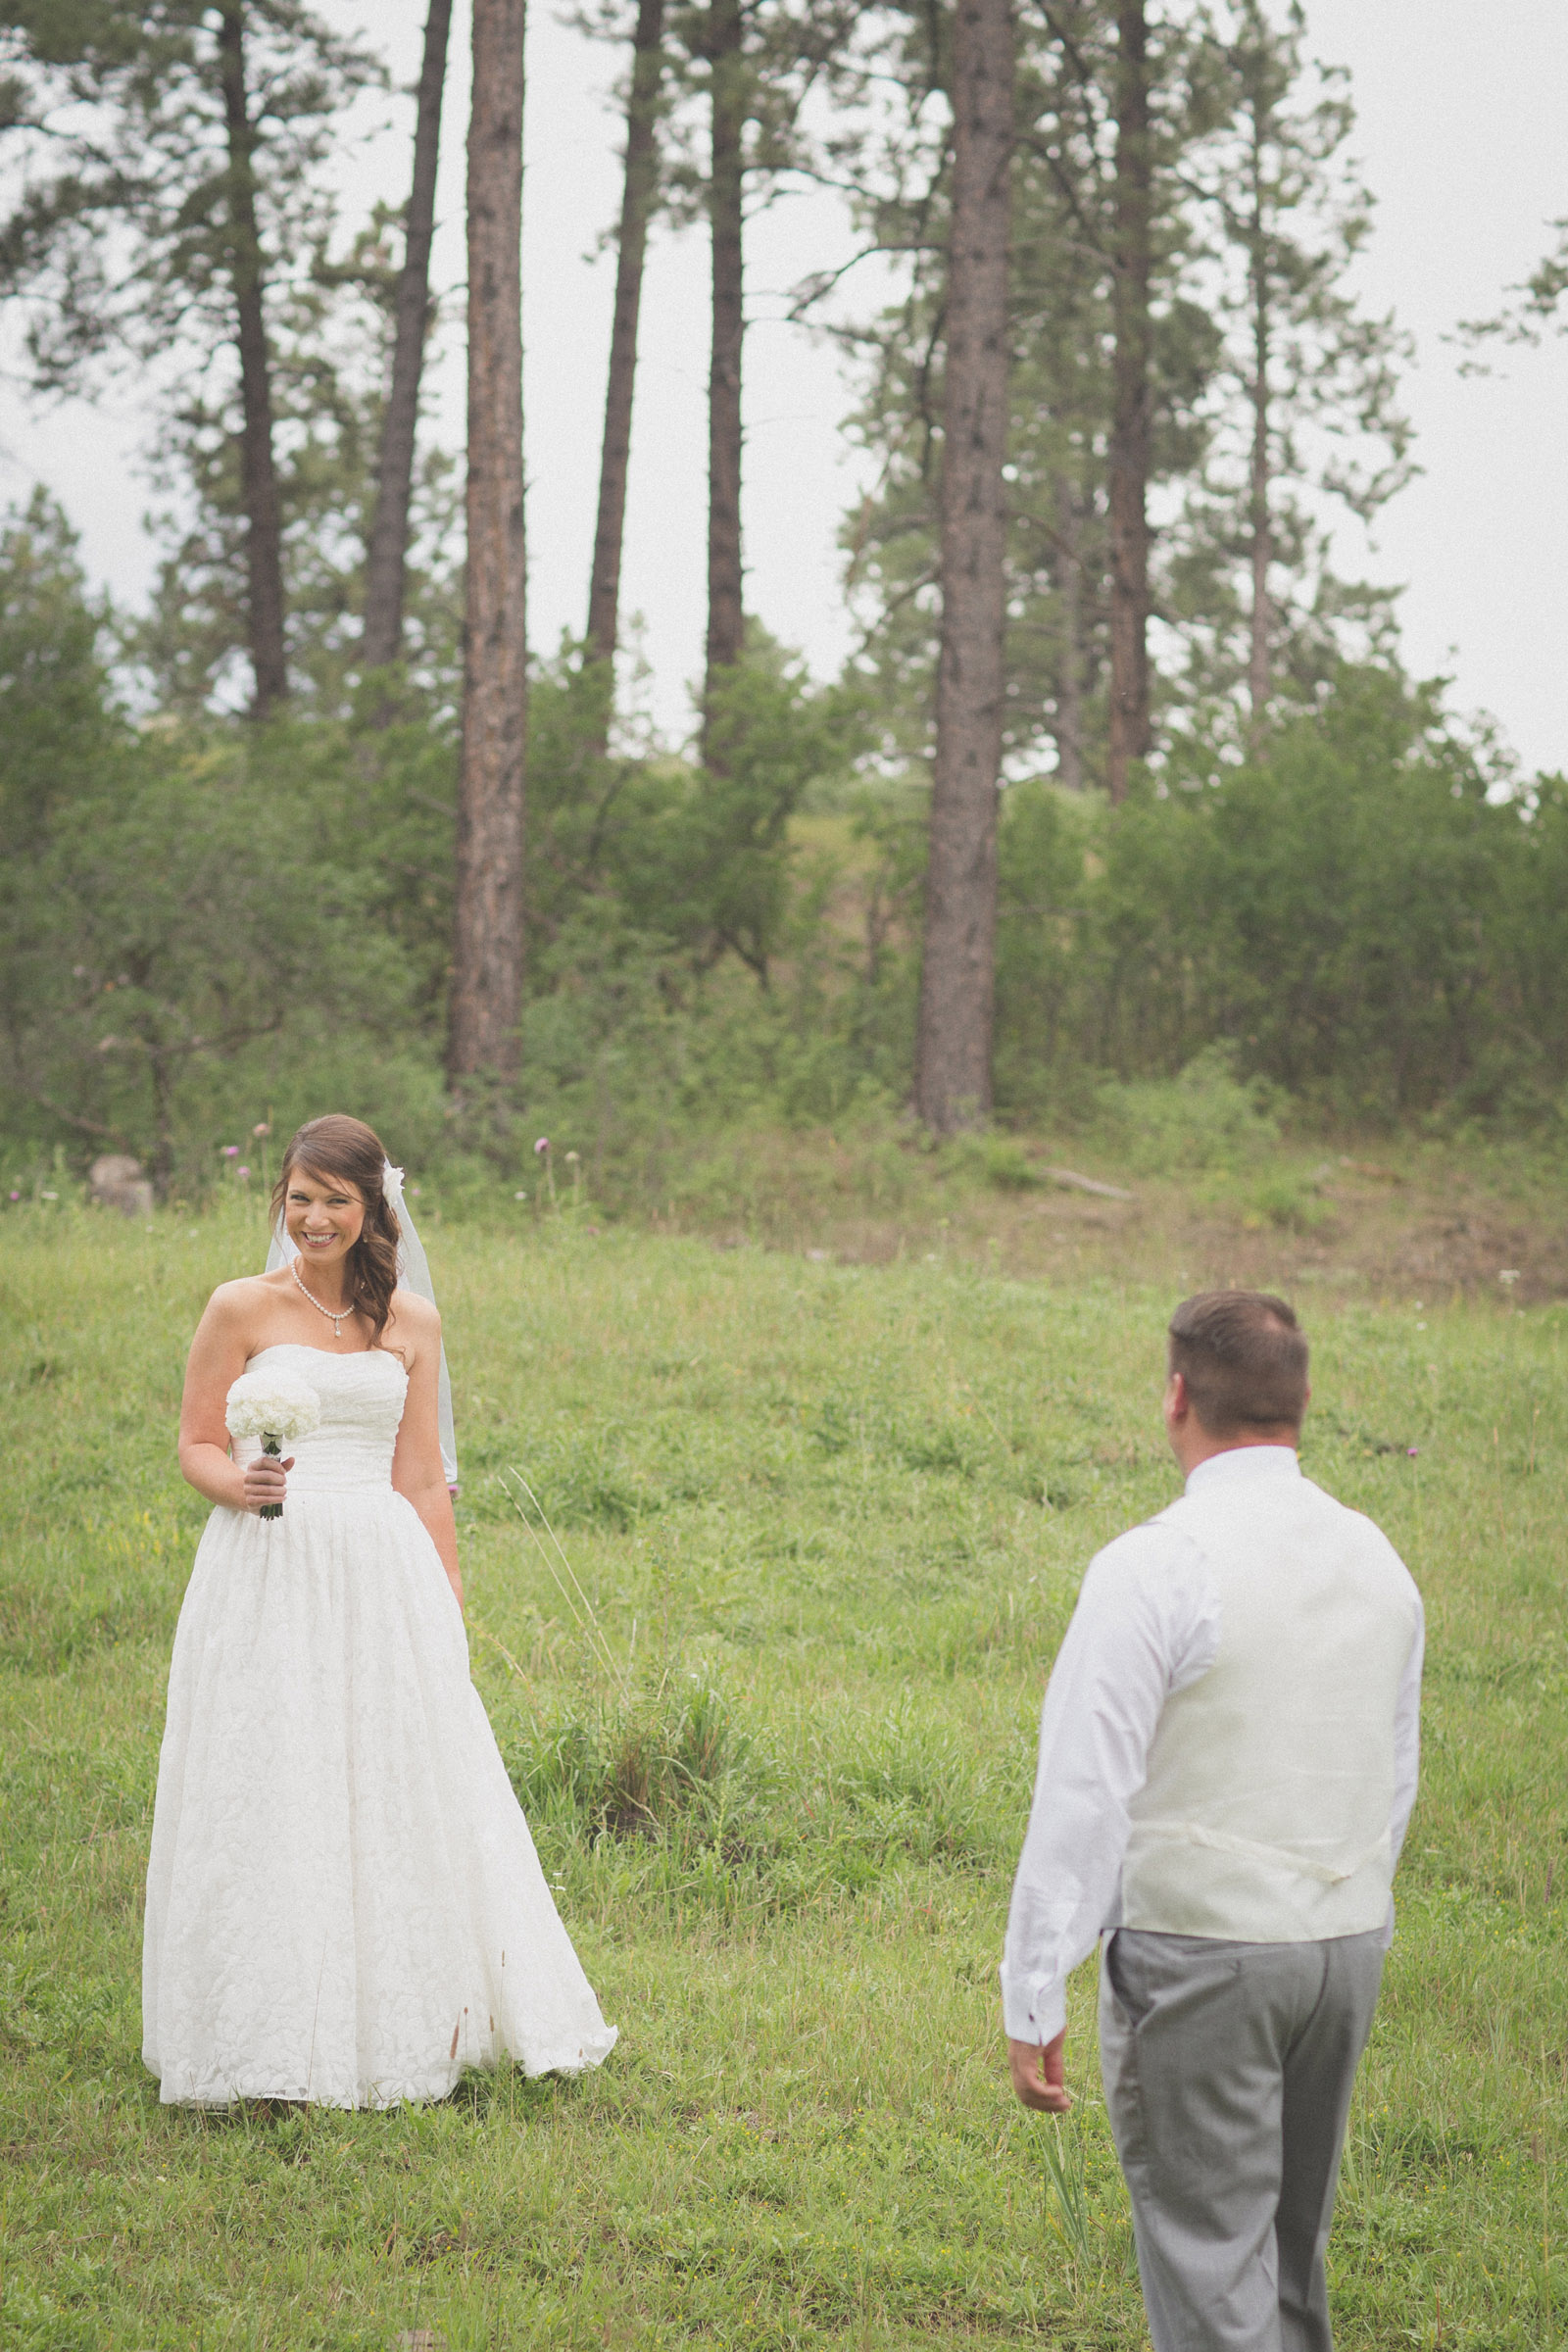 065-groom-bride-wedding-cabin-woods-forest-pictures-photos-dress-photography-portraits-first-look-firstlook-reveal-happy-farmington-aztec-durango-mancos-co-nm